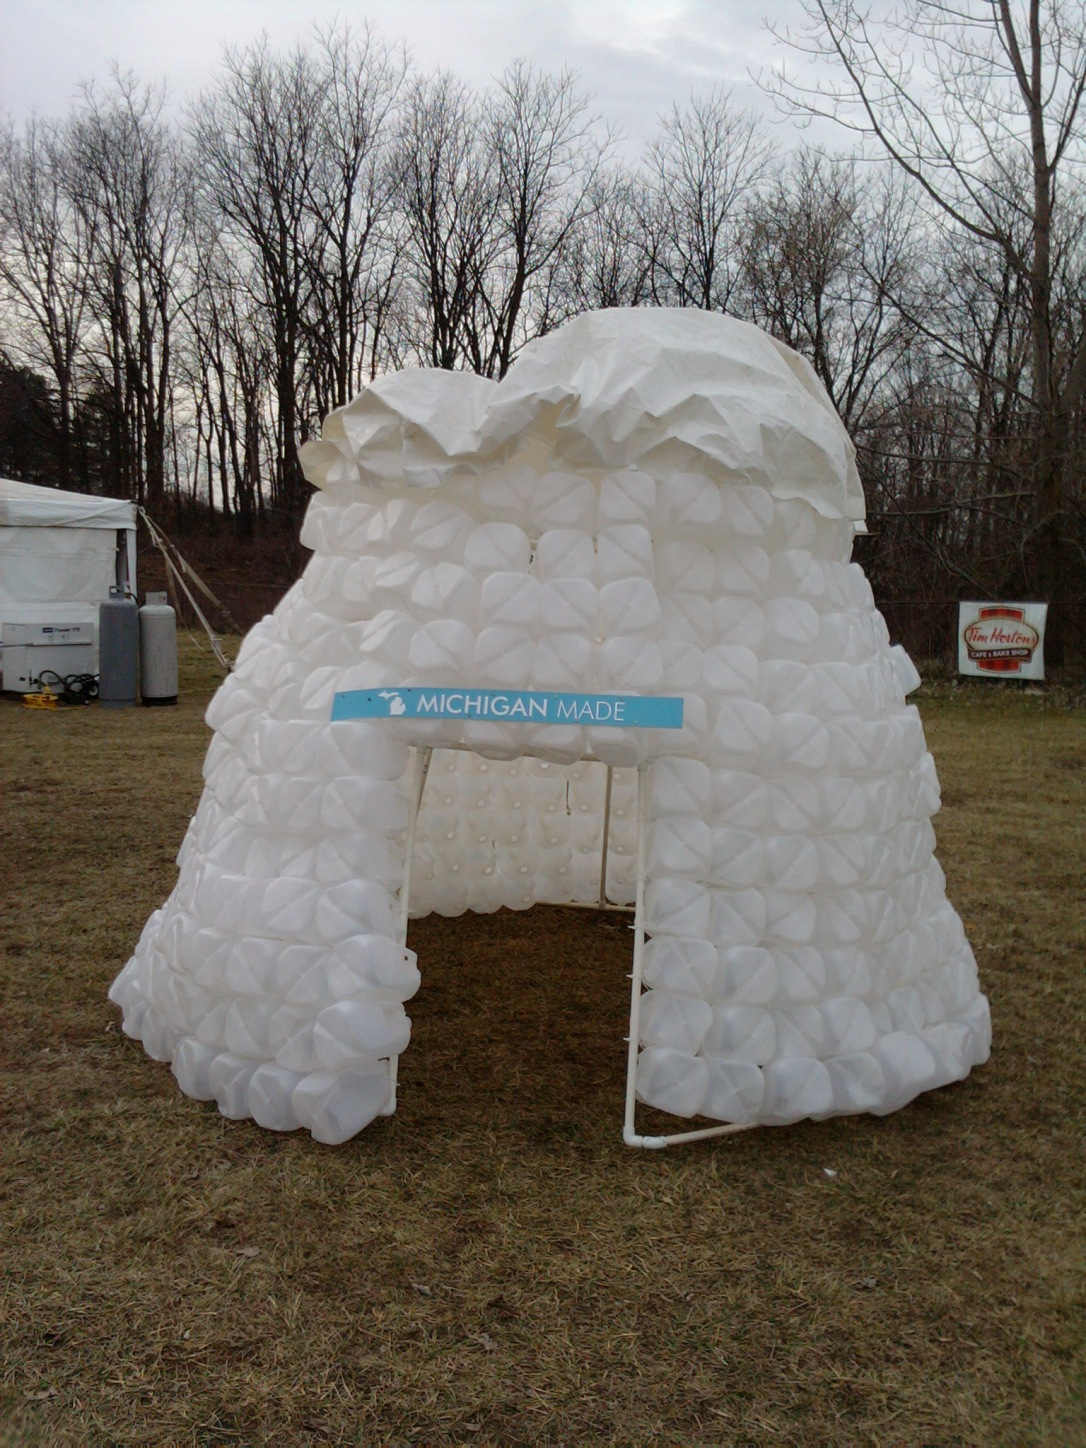 There was supposed to be an igloo village.   No snow, so this one's made out of empty milk jugs.  Ummm...yeah.  You've got to appreciate the creativity that went into making it.  :)